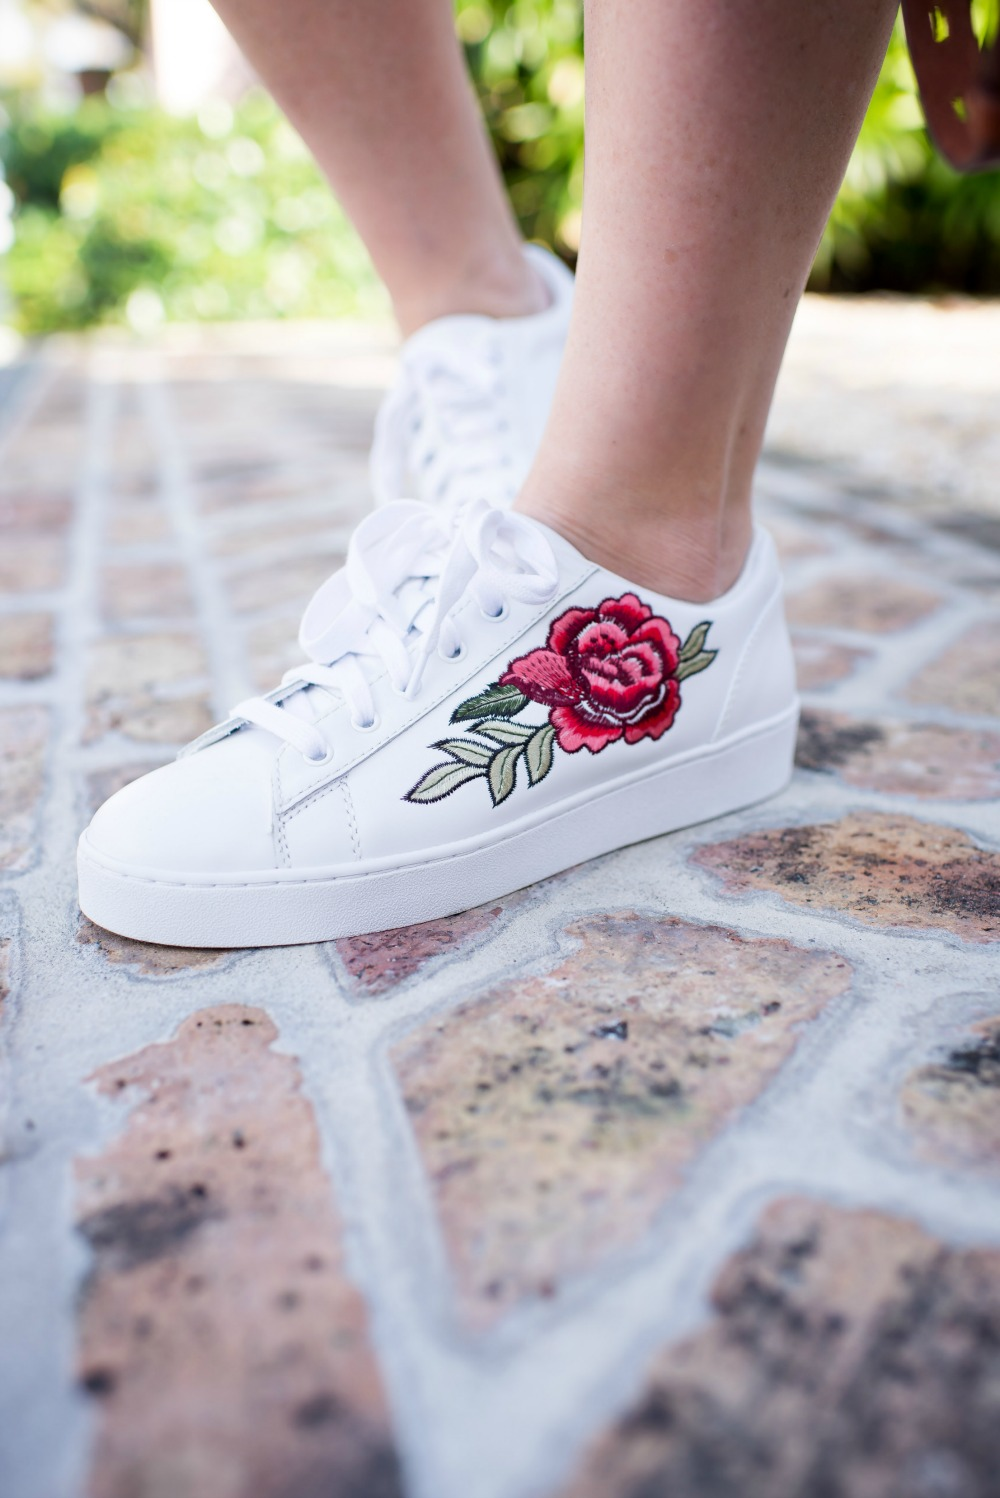 Embroidered sneakers for spring // the modern savvy